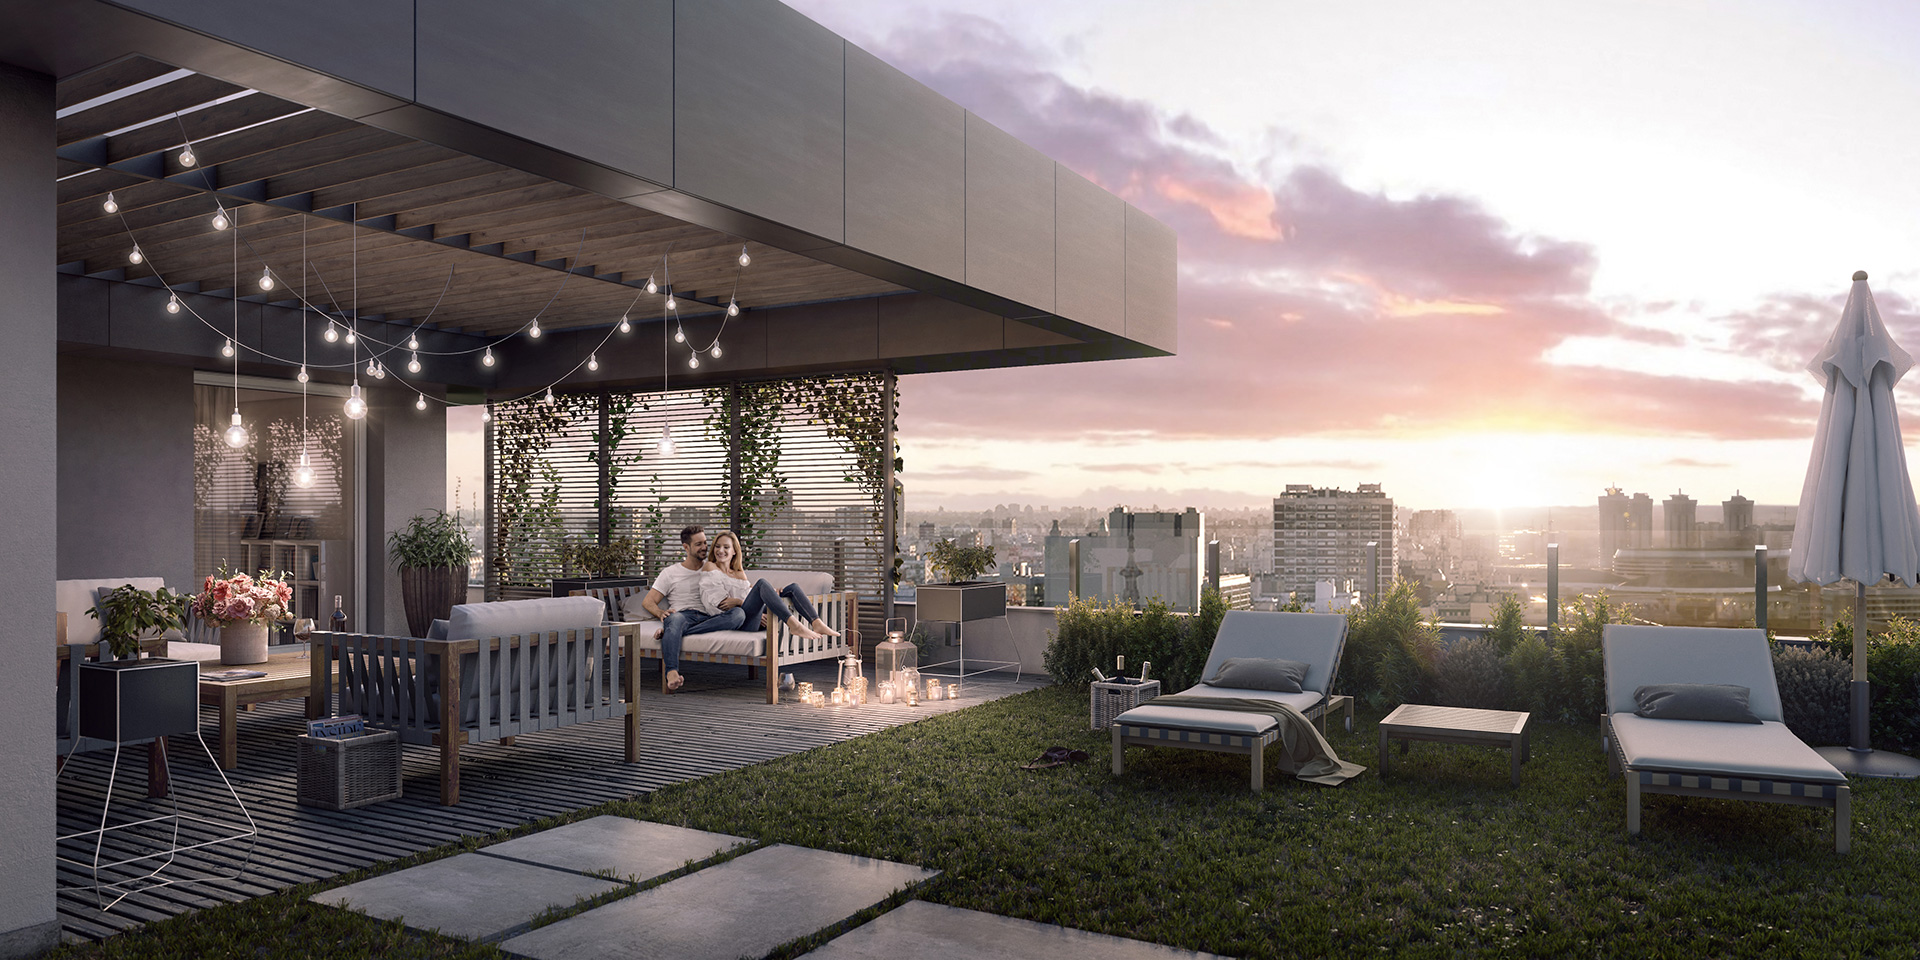 penthouse-green-roof-residental-apartment-sunset-3d-rendering-copyright-www-kaiserbold-com